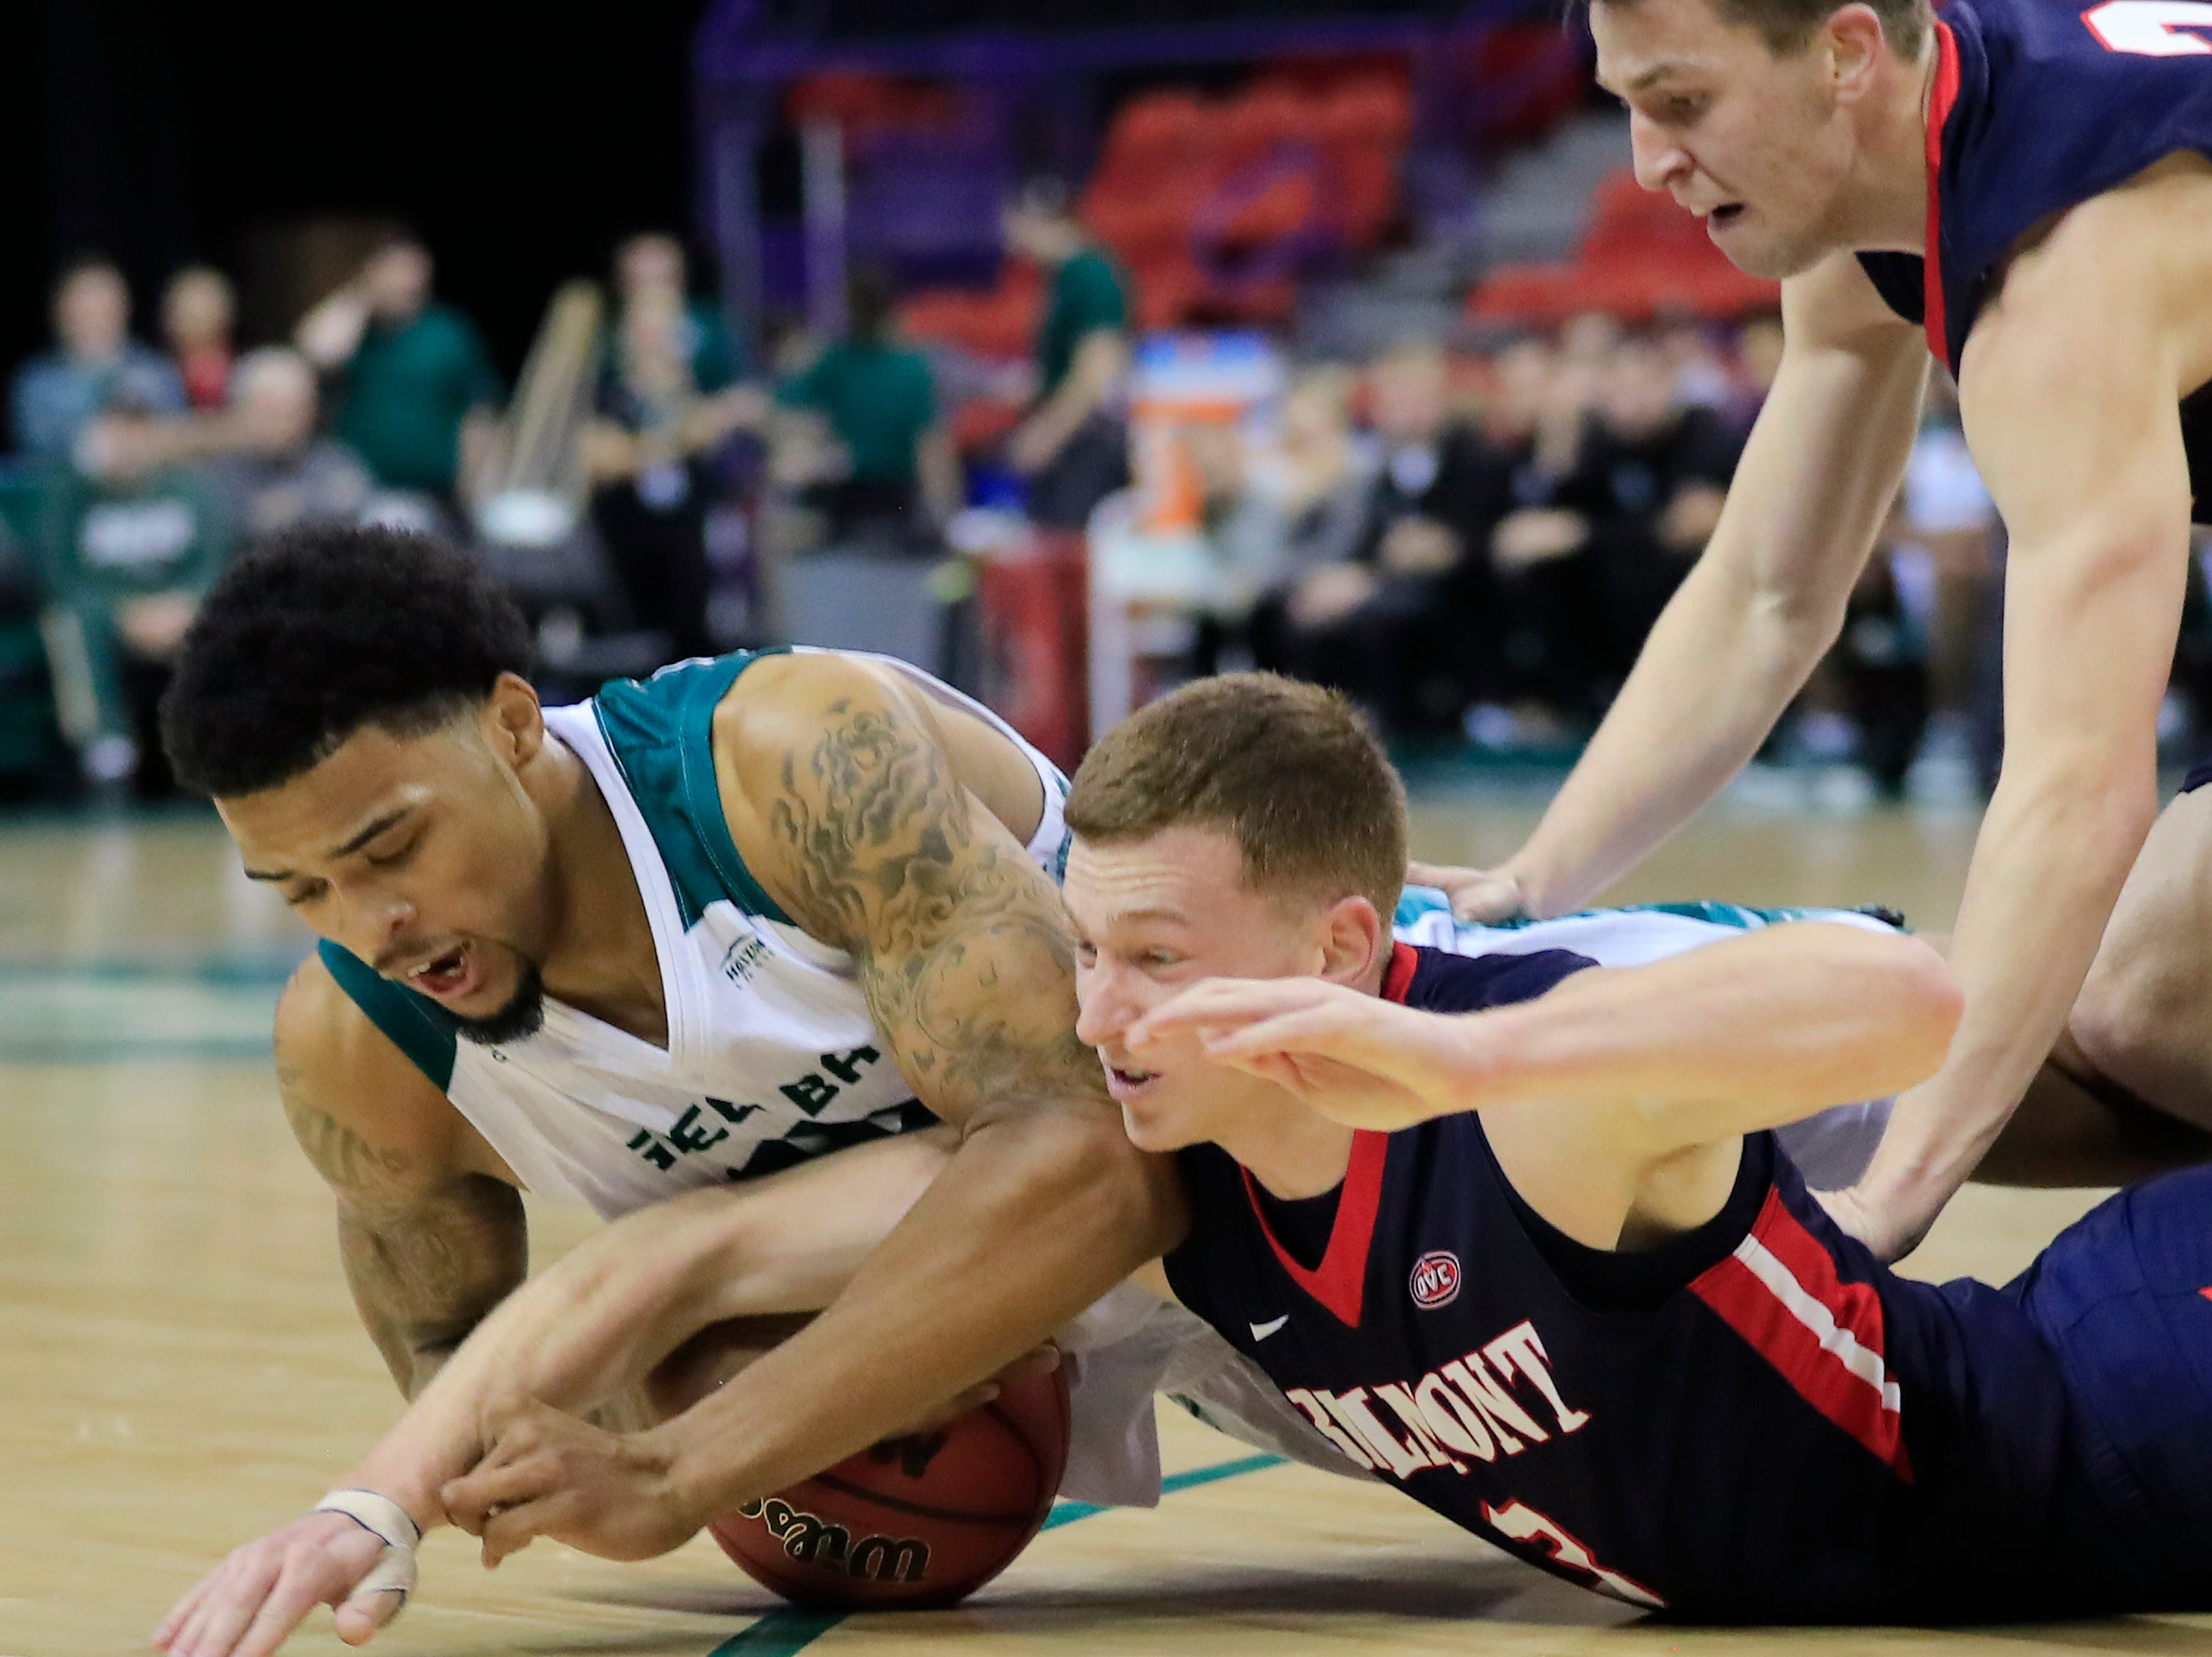 Green Bay Phoenix forward Manny Patterson (15) and Belmont Bruins guard Dylan Windler (3) dive for a loose ball in a NCAA basketball game at the Resch Center on Saturday, December 1, 2018 in Ashwaubenon, Wis.